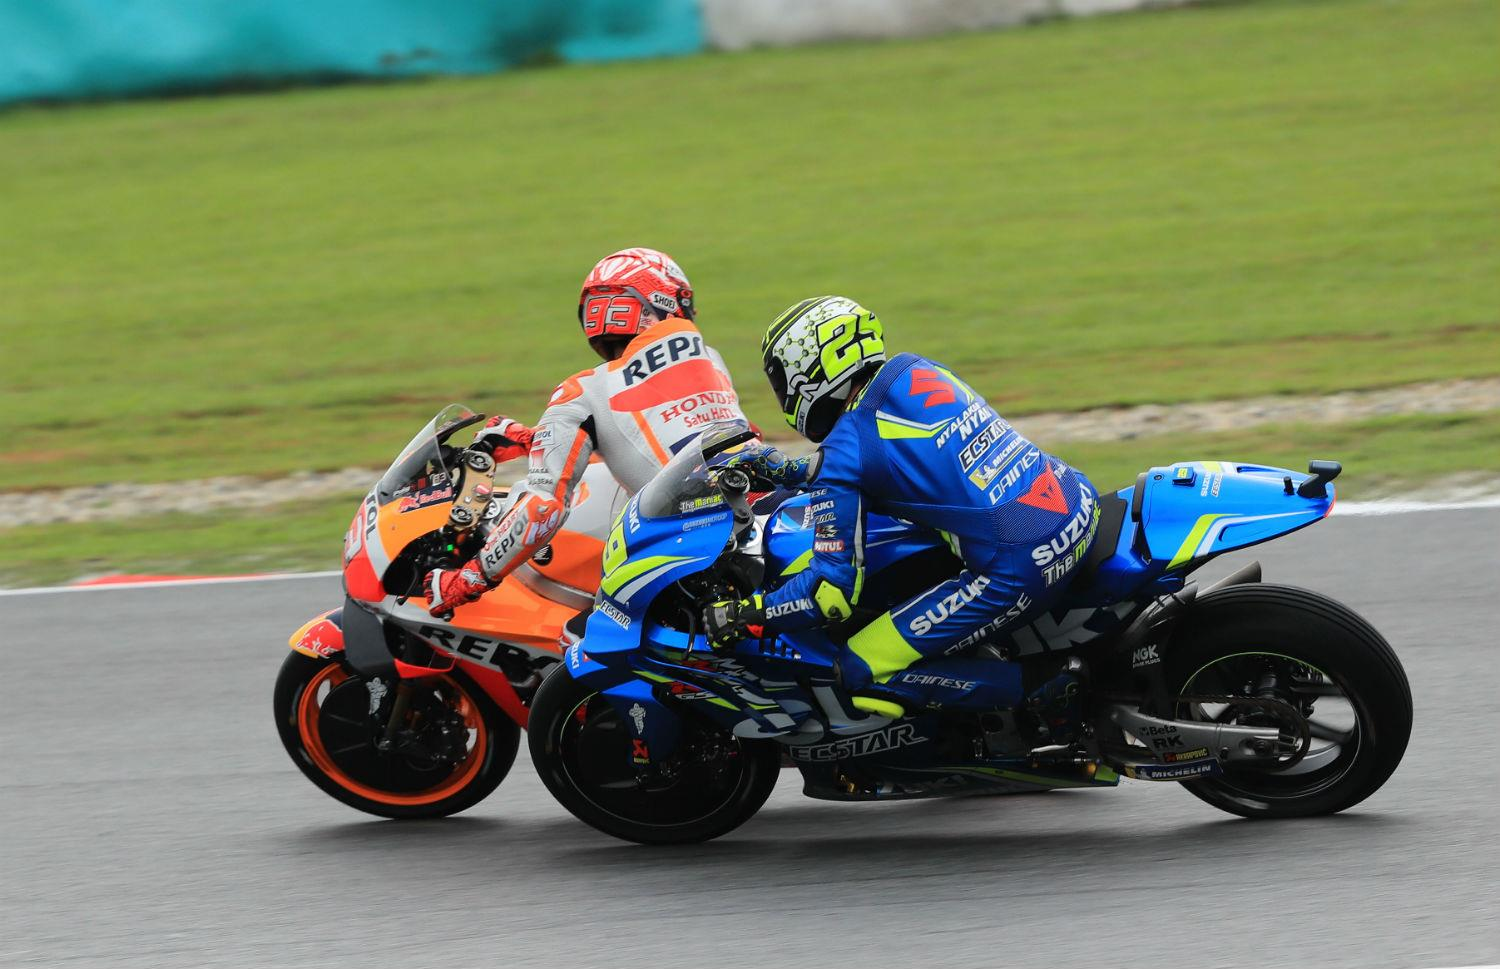 Marquez wins Malaysian MotoGP as Rossi crashes out